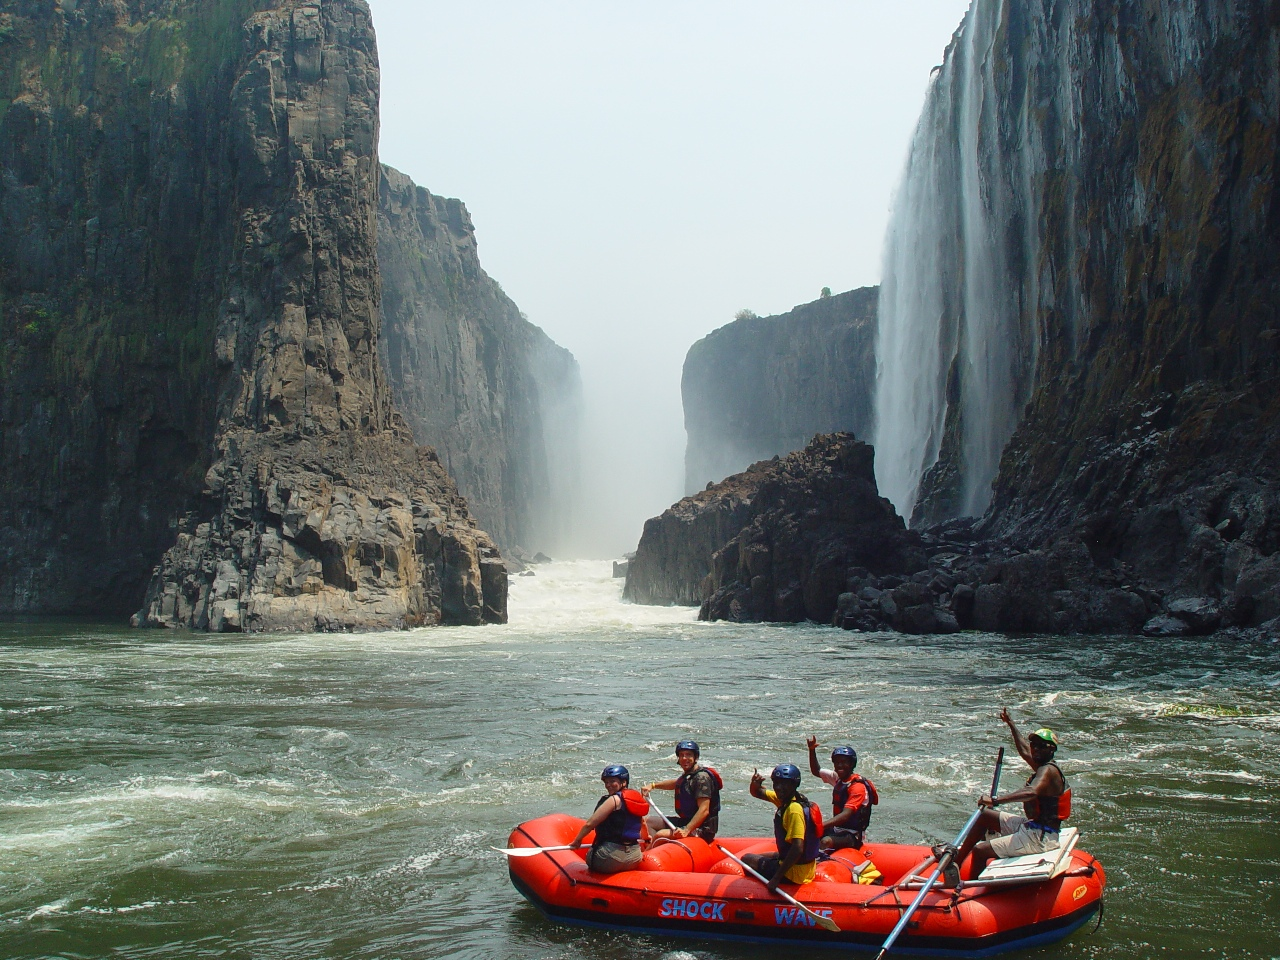 ZAMBEZI RIVER RAFTING BELOW FALLS